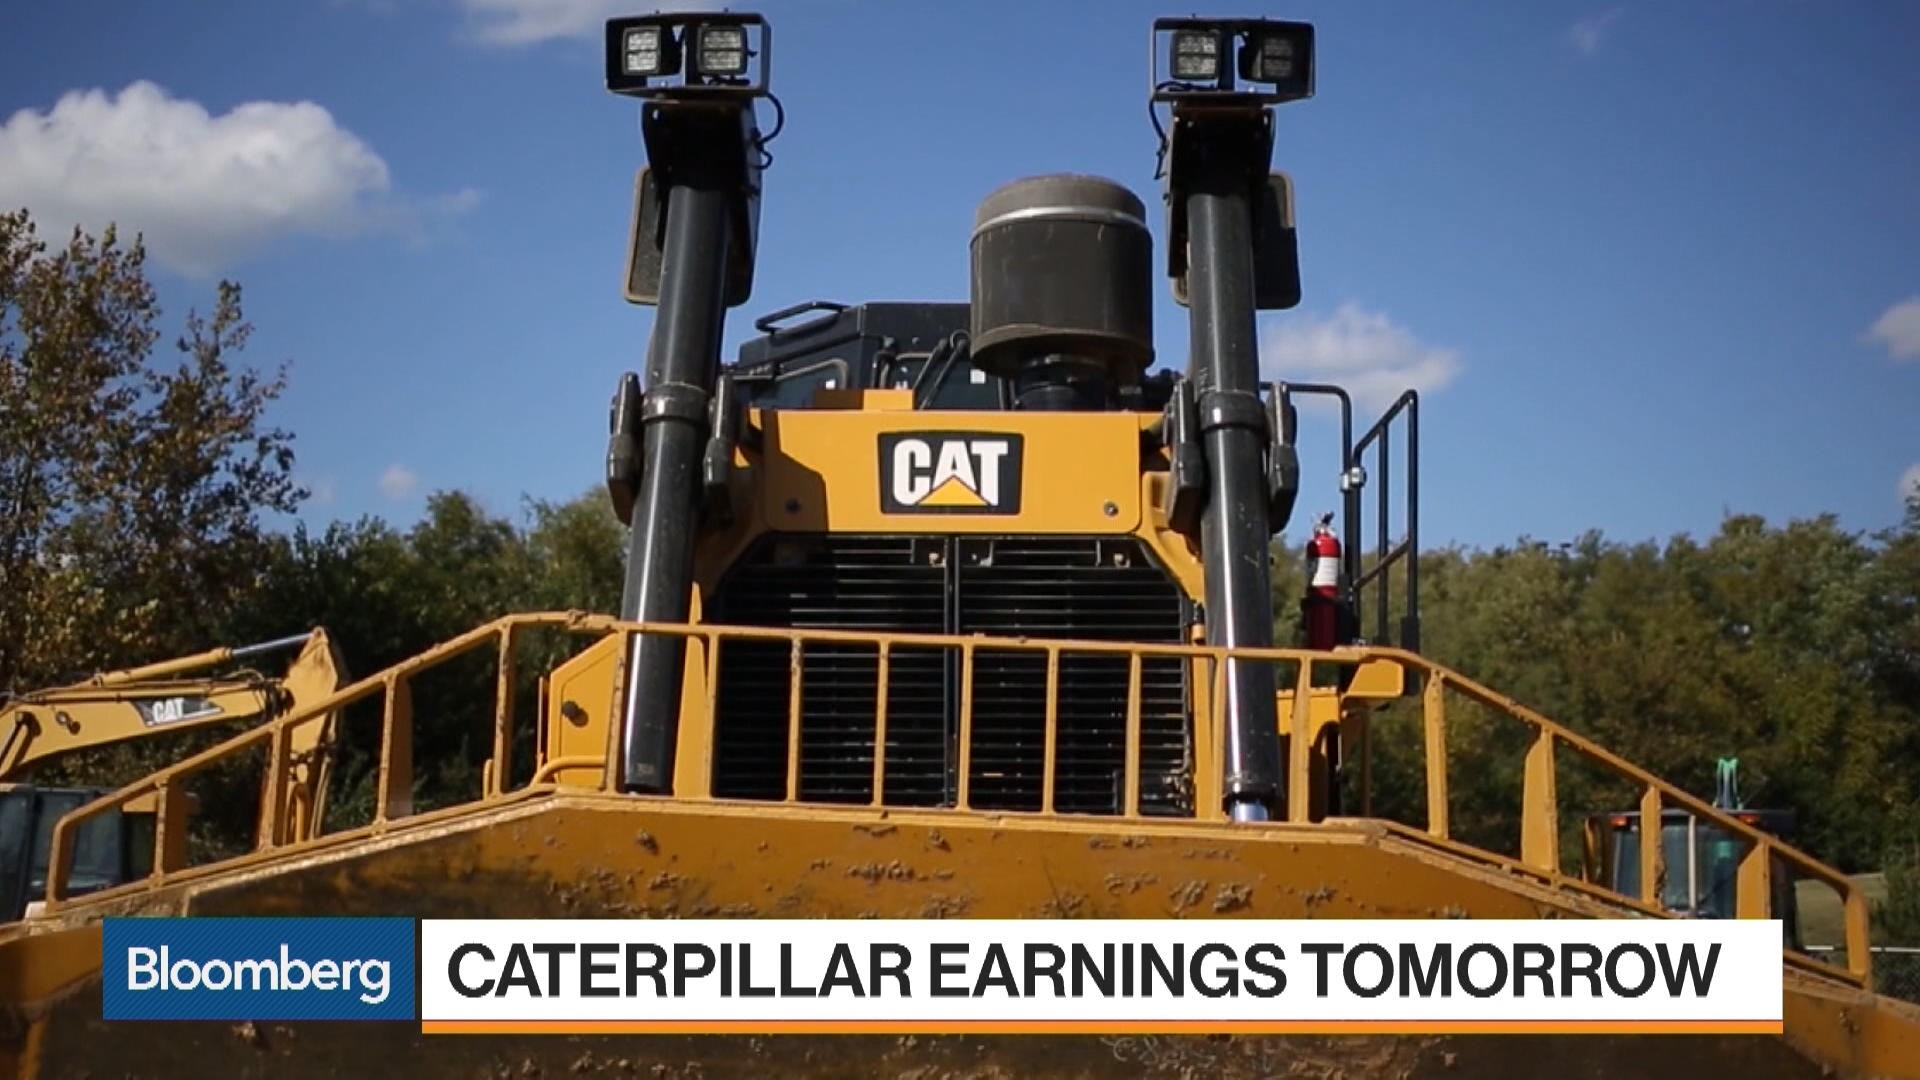 Cat Stock Quote Catnew York Stock Quote  Caterpillar Inc  Bloomberg Markets